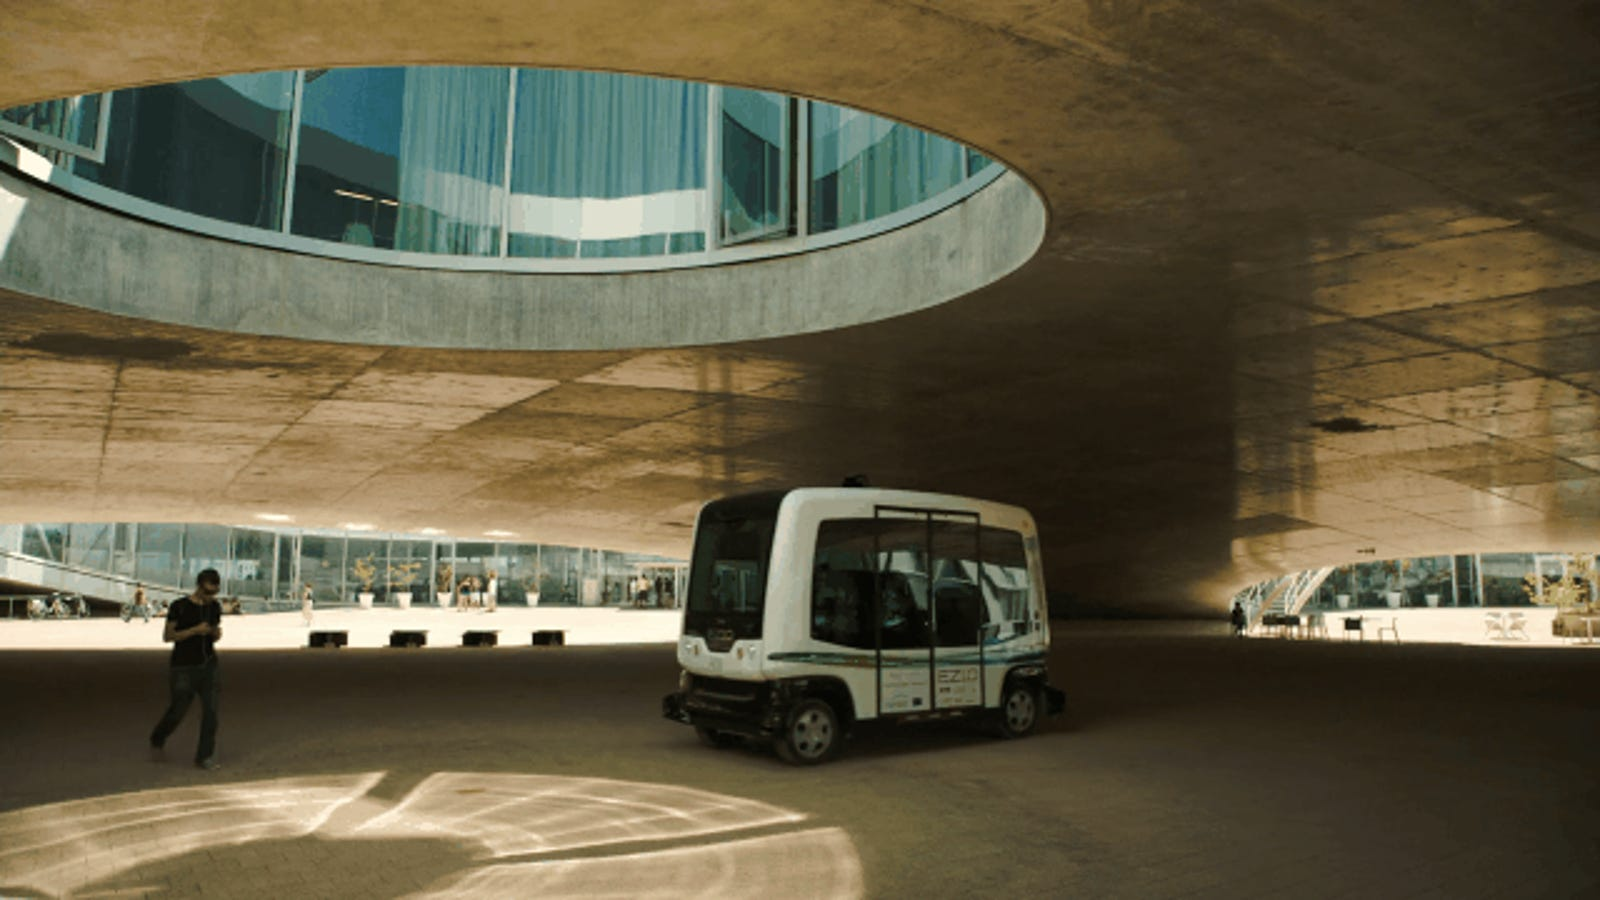 An Autonomous Shuttle Is Driving Public Streets for the First Time